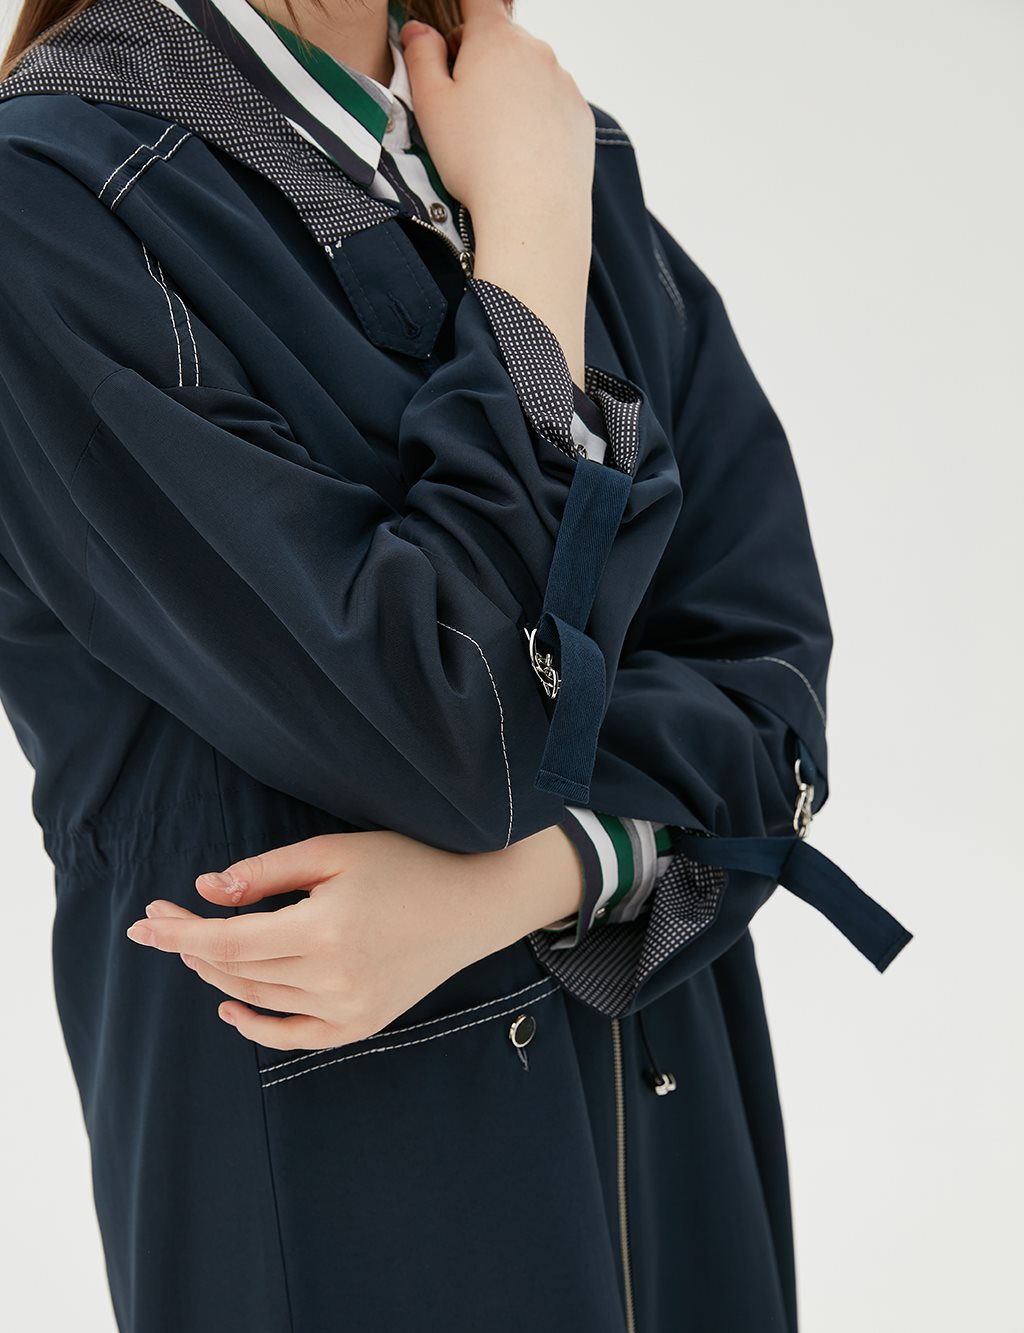 Ruched Coat With Hood B20 24006 Navy